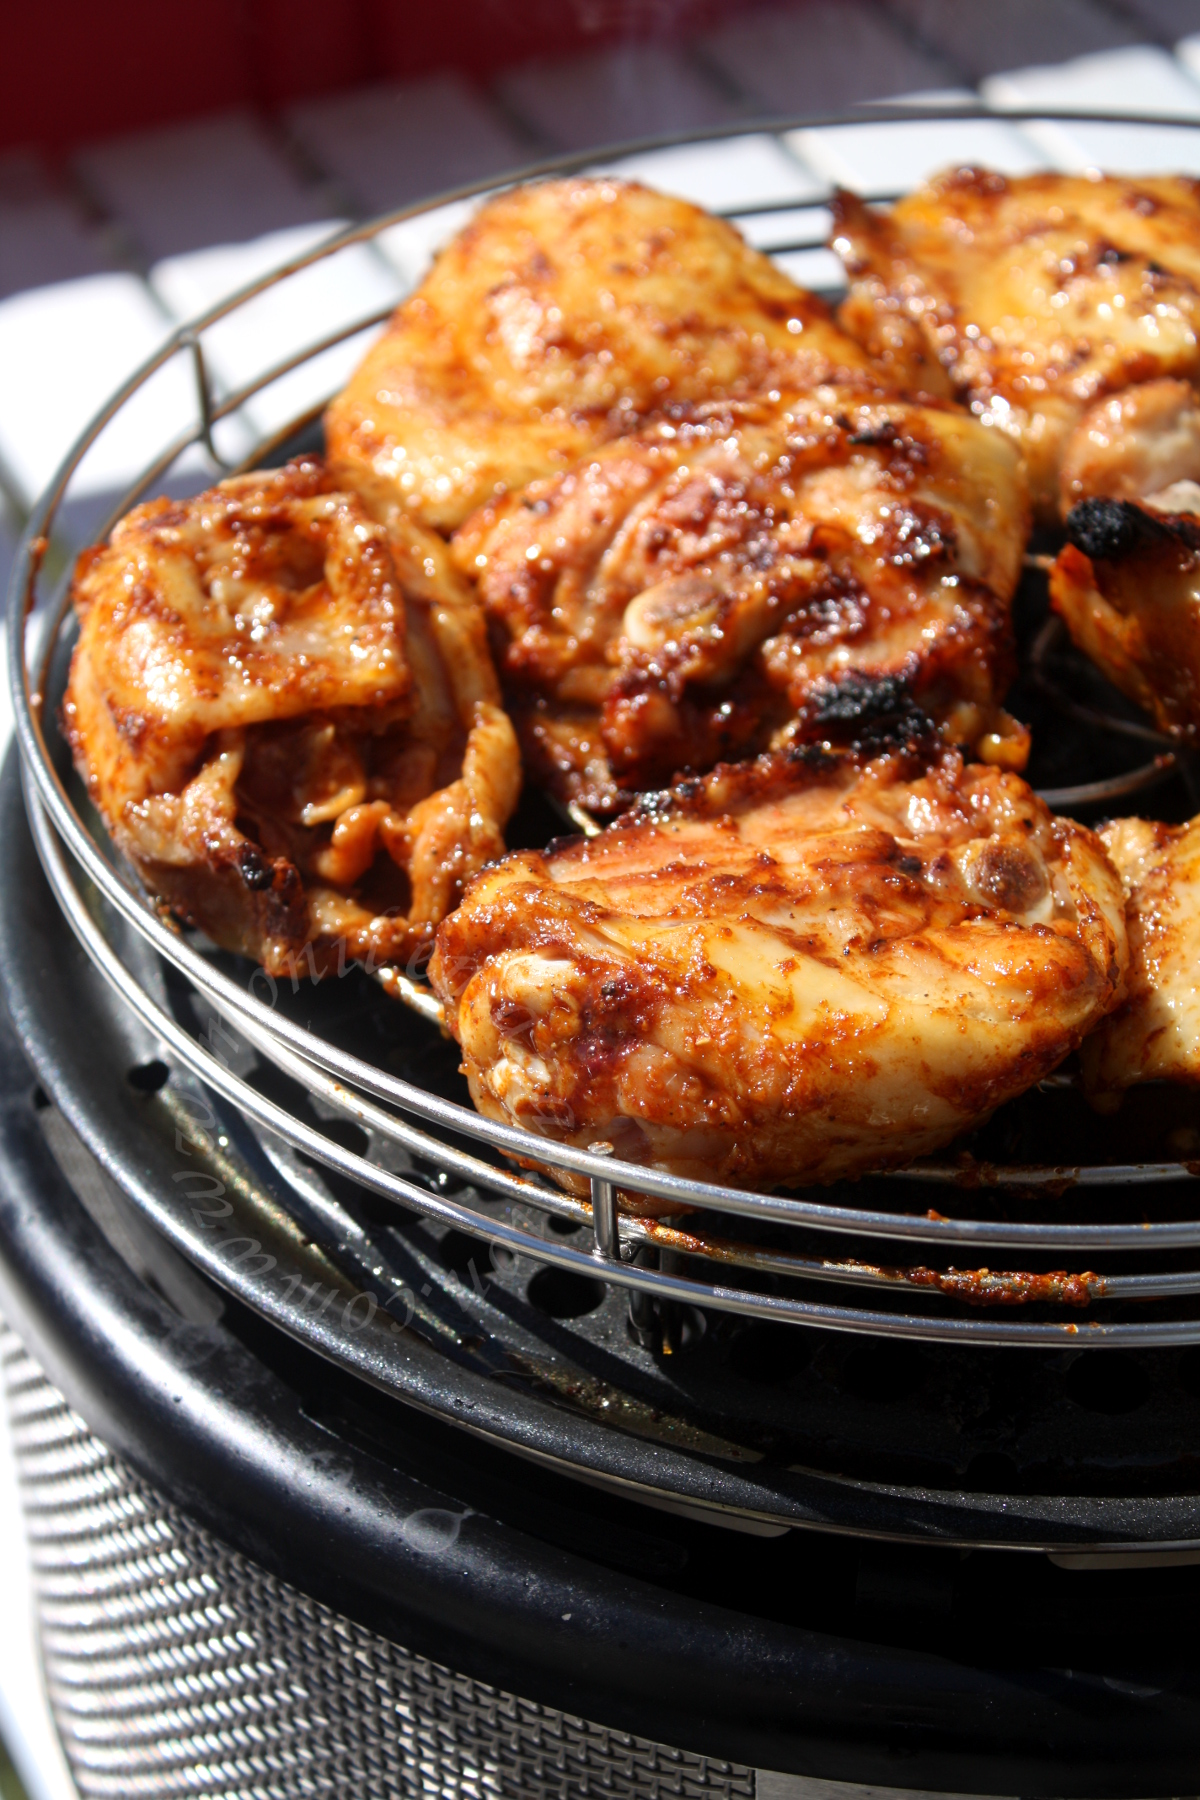 Poulet grillé au pimentón - Smoked paprika grilled chicken thighs